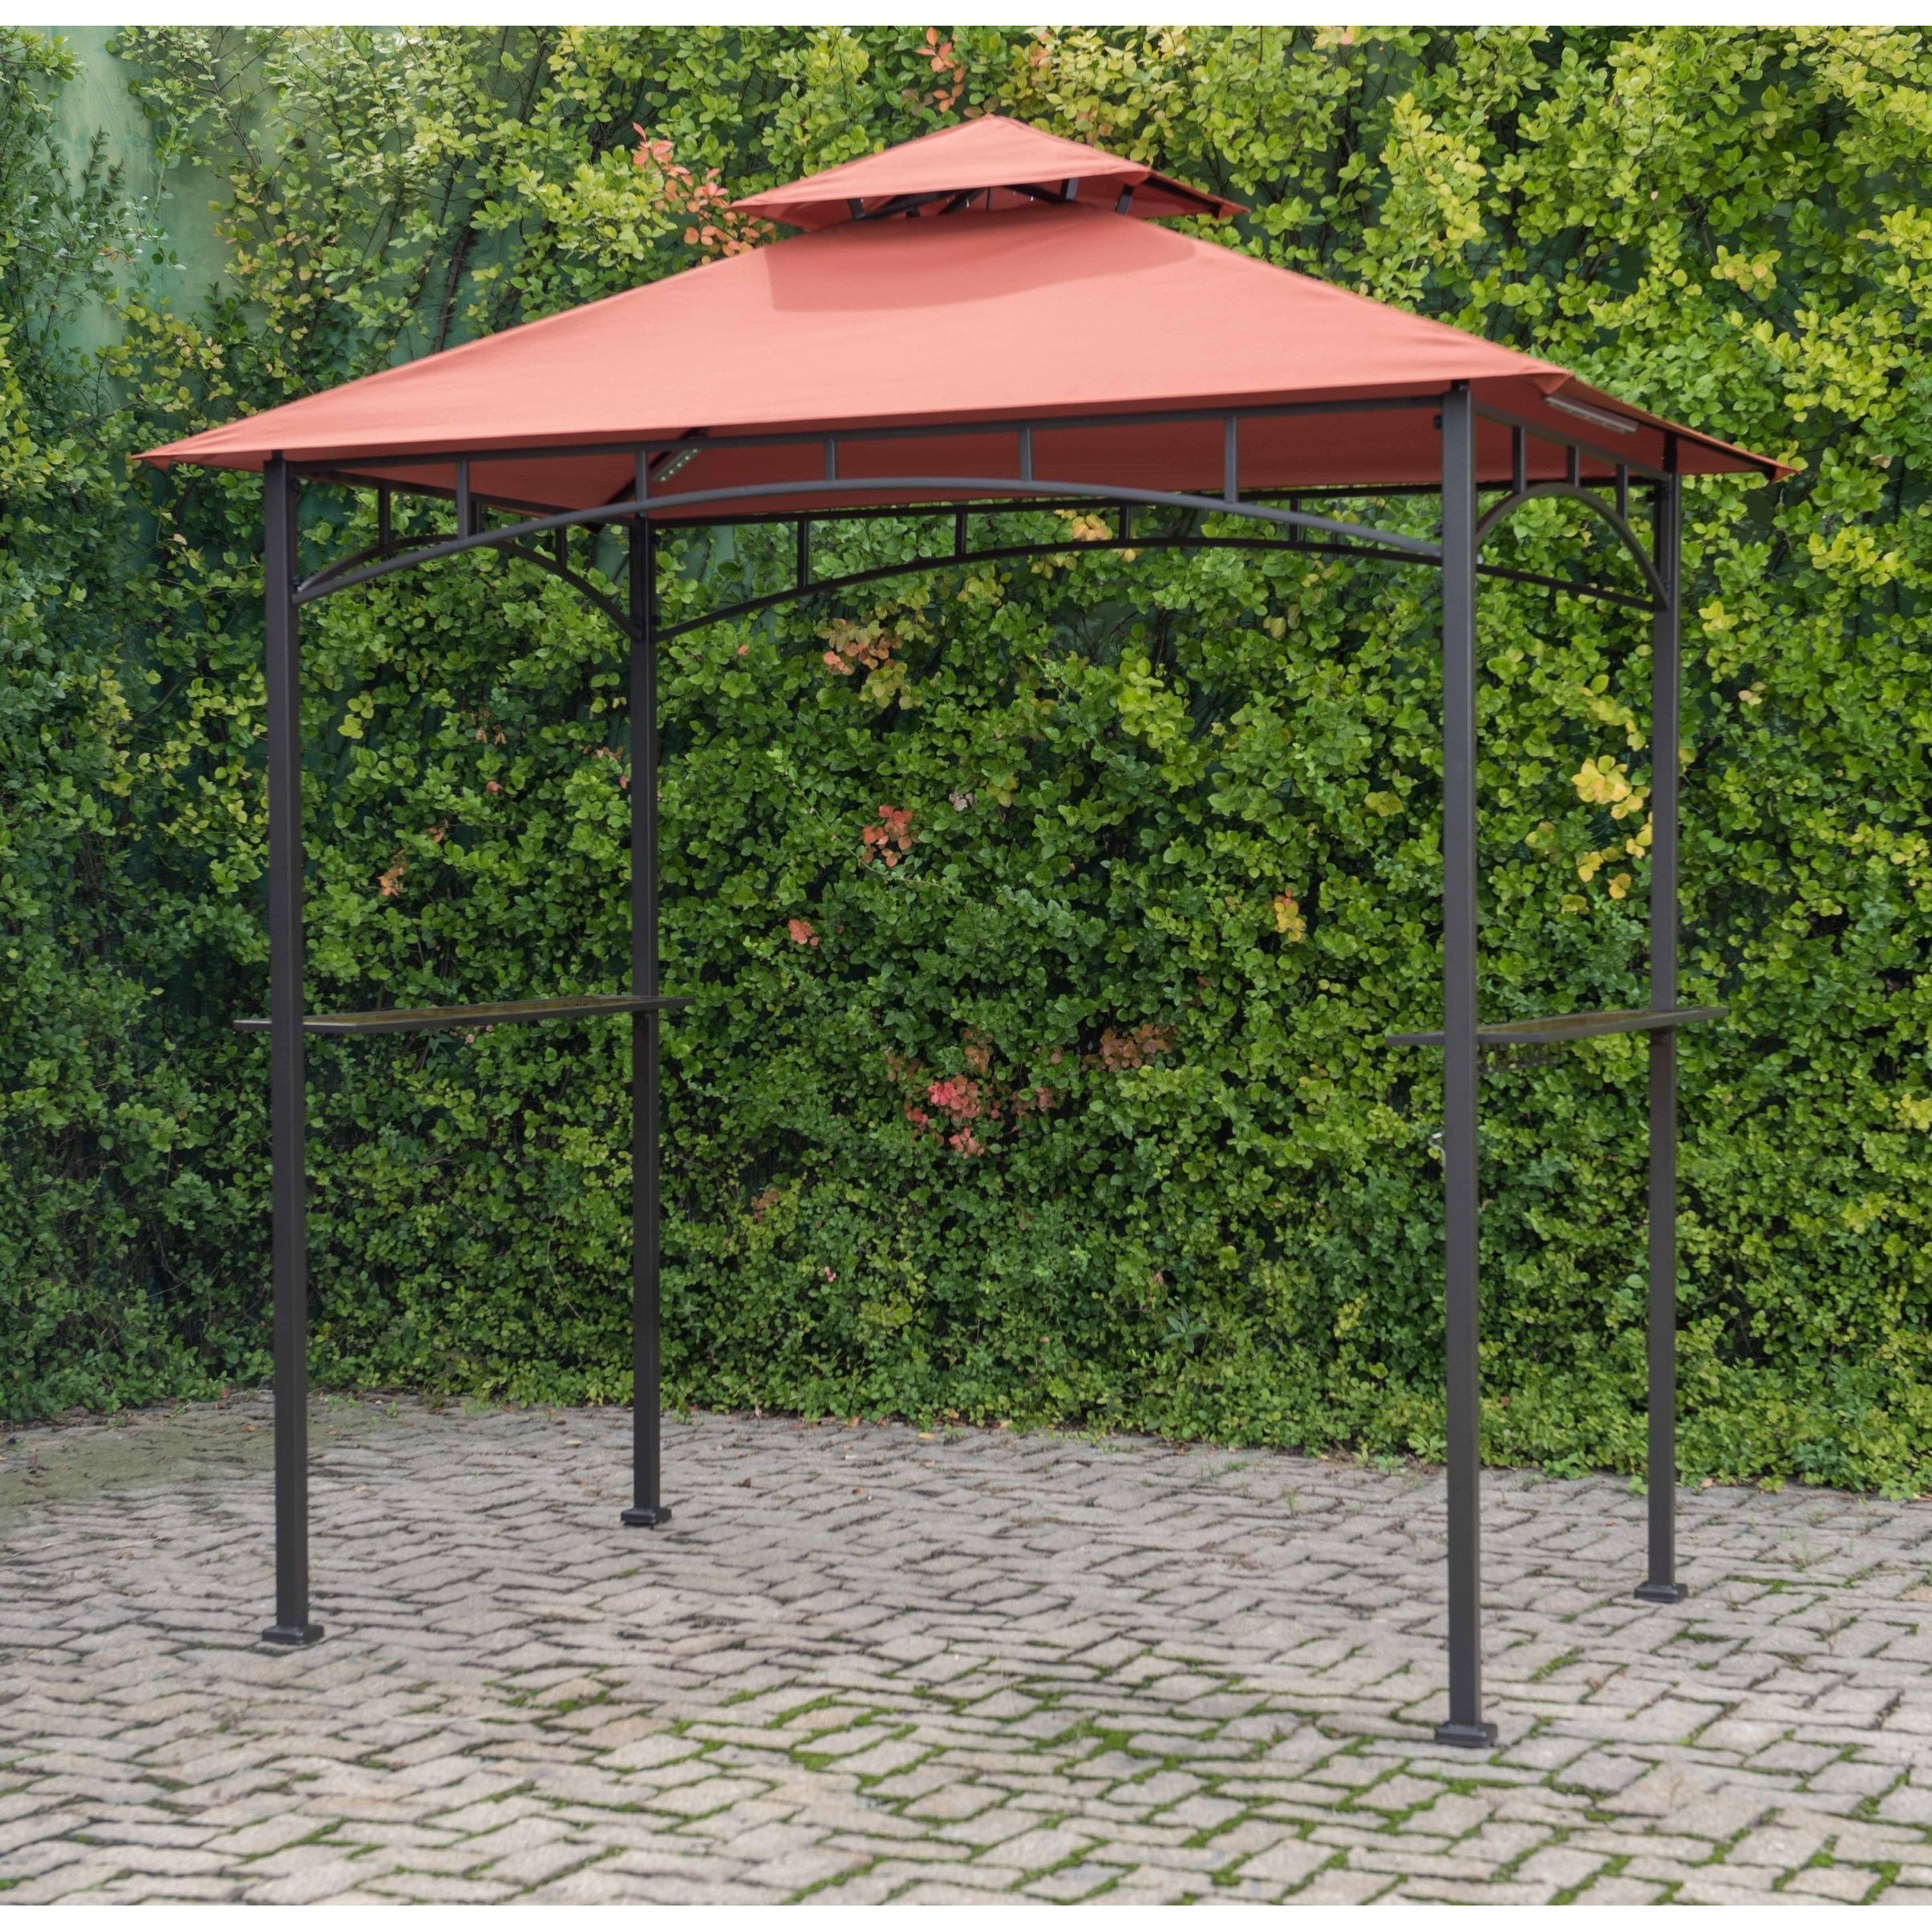 Sunjoy Soft Top Grill Gazebo With Terra Cotta Canopy And Led